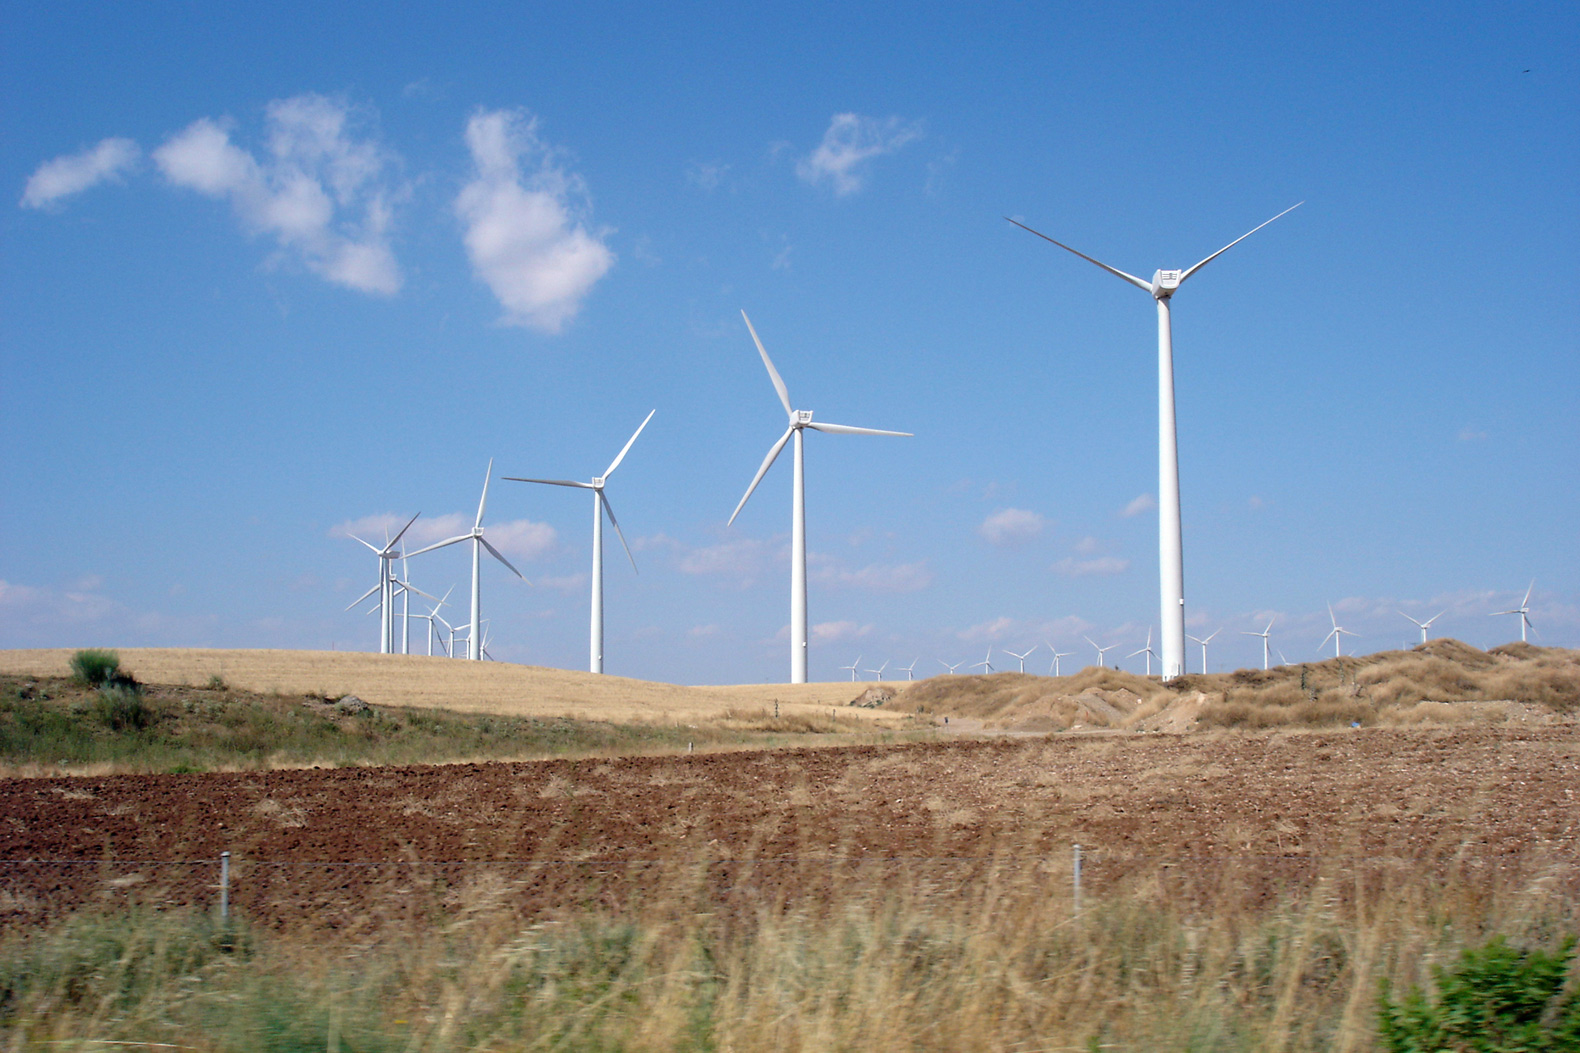 Spain launches plan for 100% renewable electricity by 2050